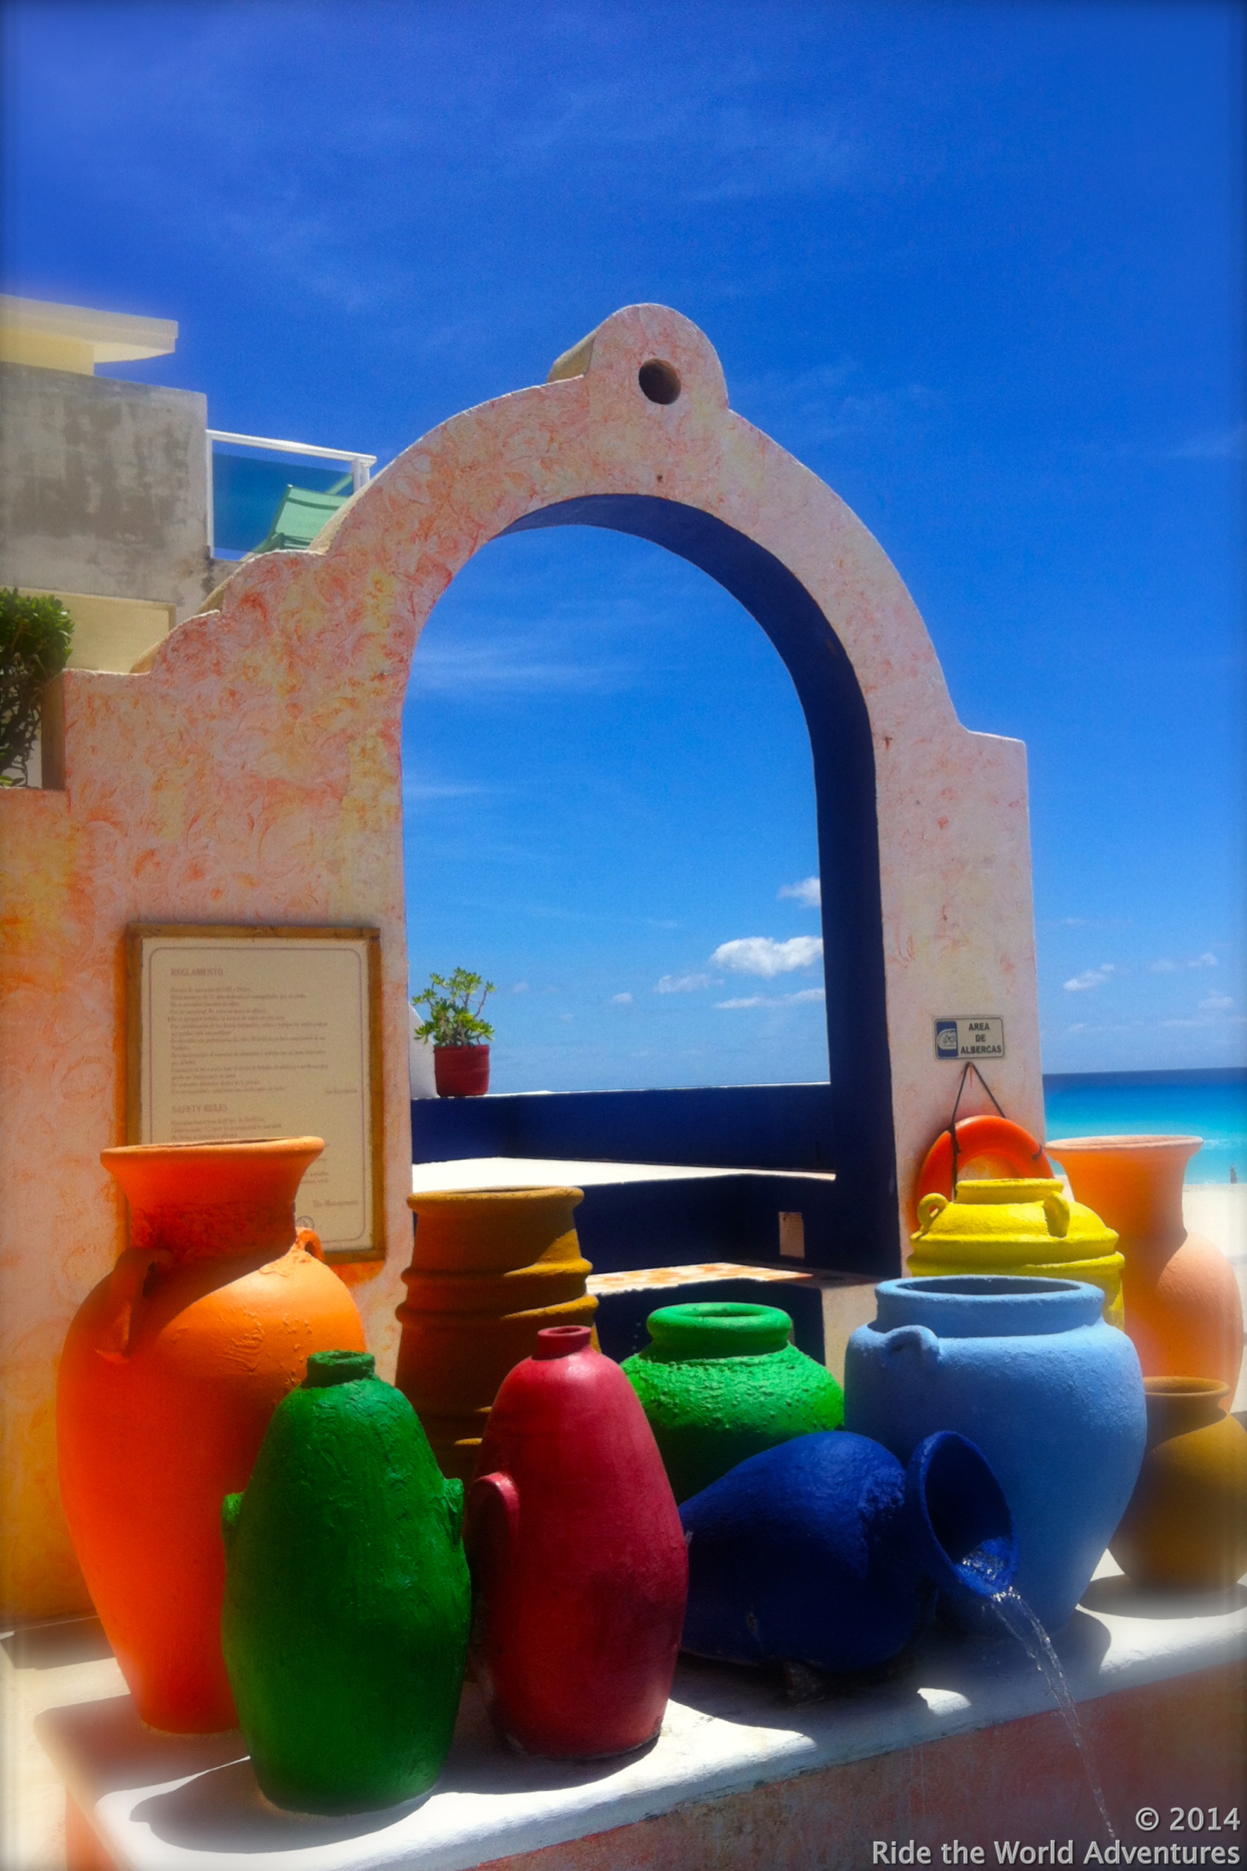 Cancun…I can't believe that I did not take a picture of our fibrous luggage…dammn